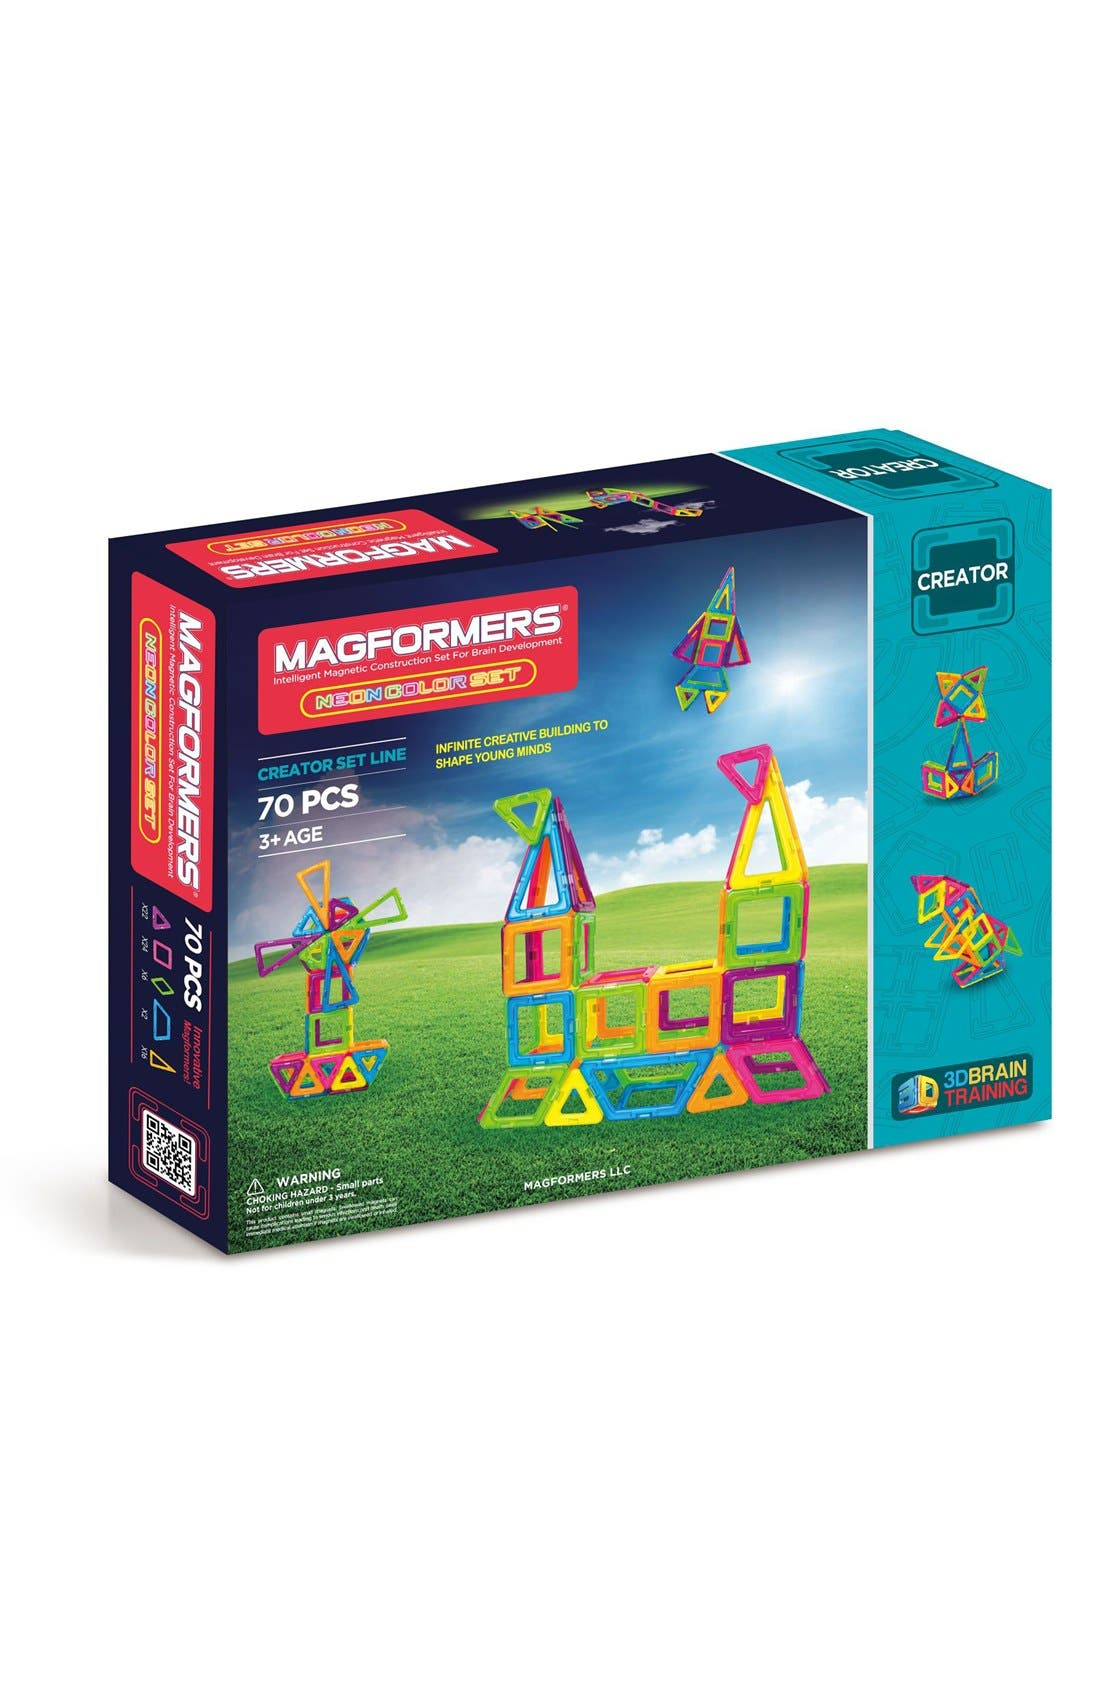 Main Image - Magformers 'Creator' Neon Magnetic 3D Construction Set